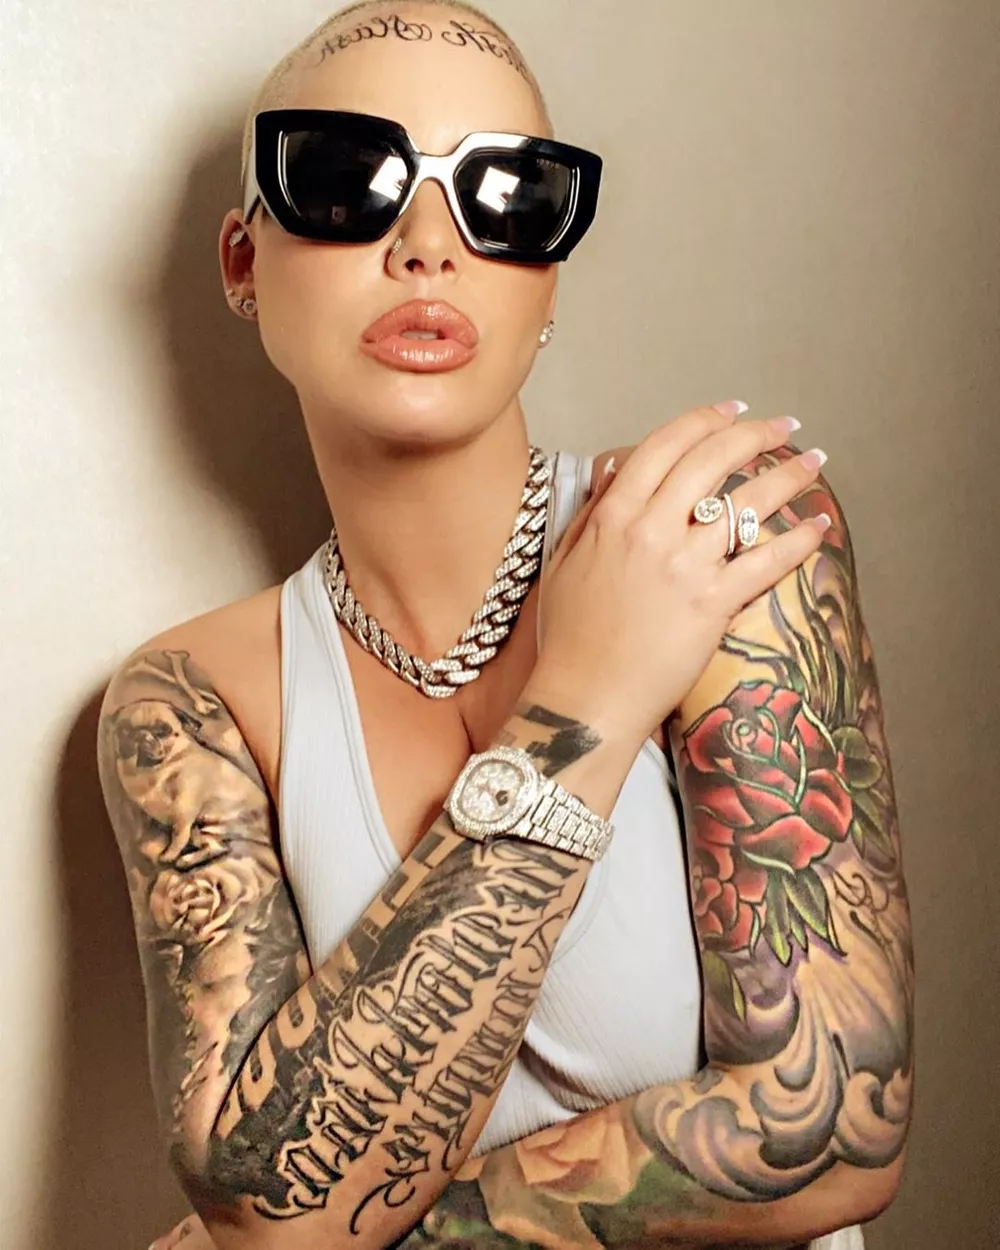 Kobe Bryant S Death Inspired Amber Rose To Get New Face Tattoo In 2020 Amber Rose Amber Rose Tattoo Shaved Head Designs